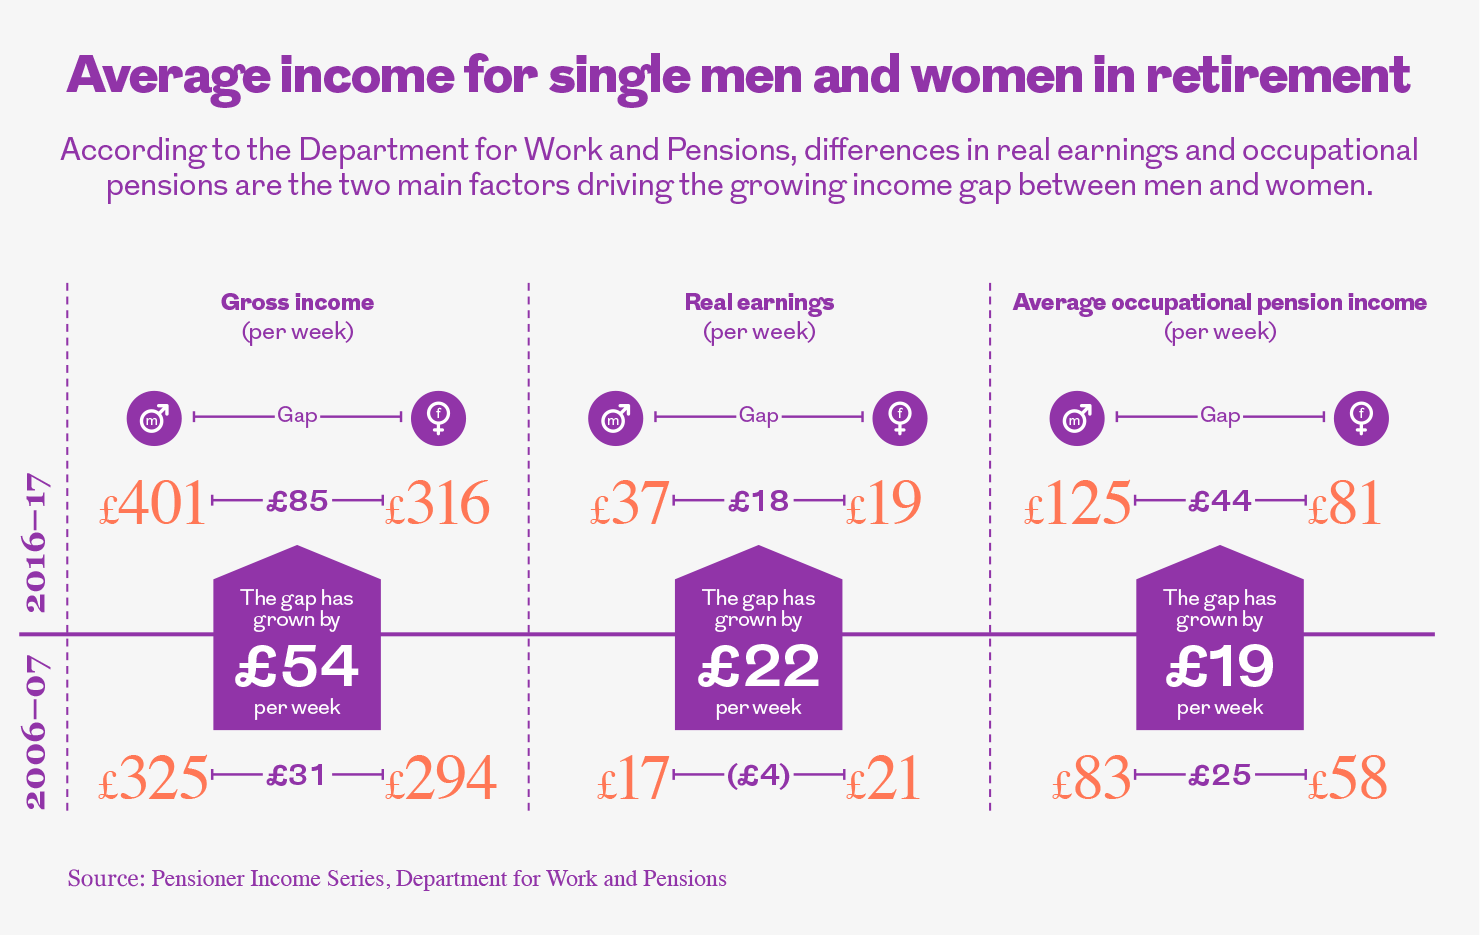 Table showing the average income for single men and women in retirement. This image is an infographic and has alternative text available if you are using a screen reader.